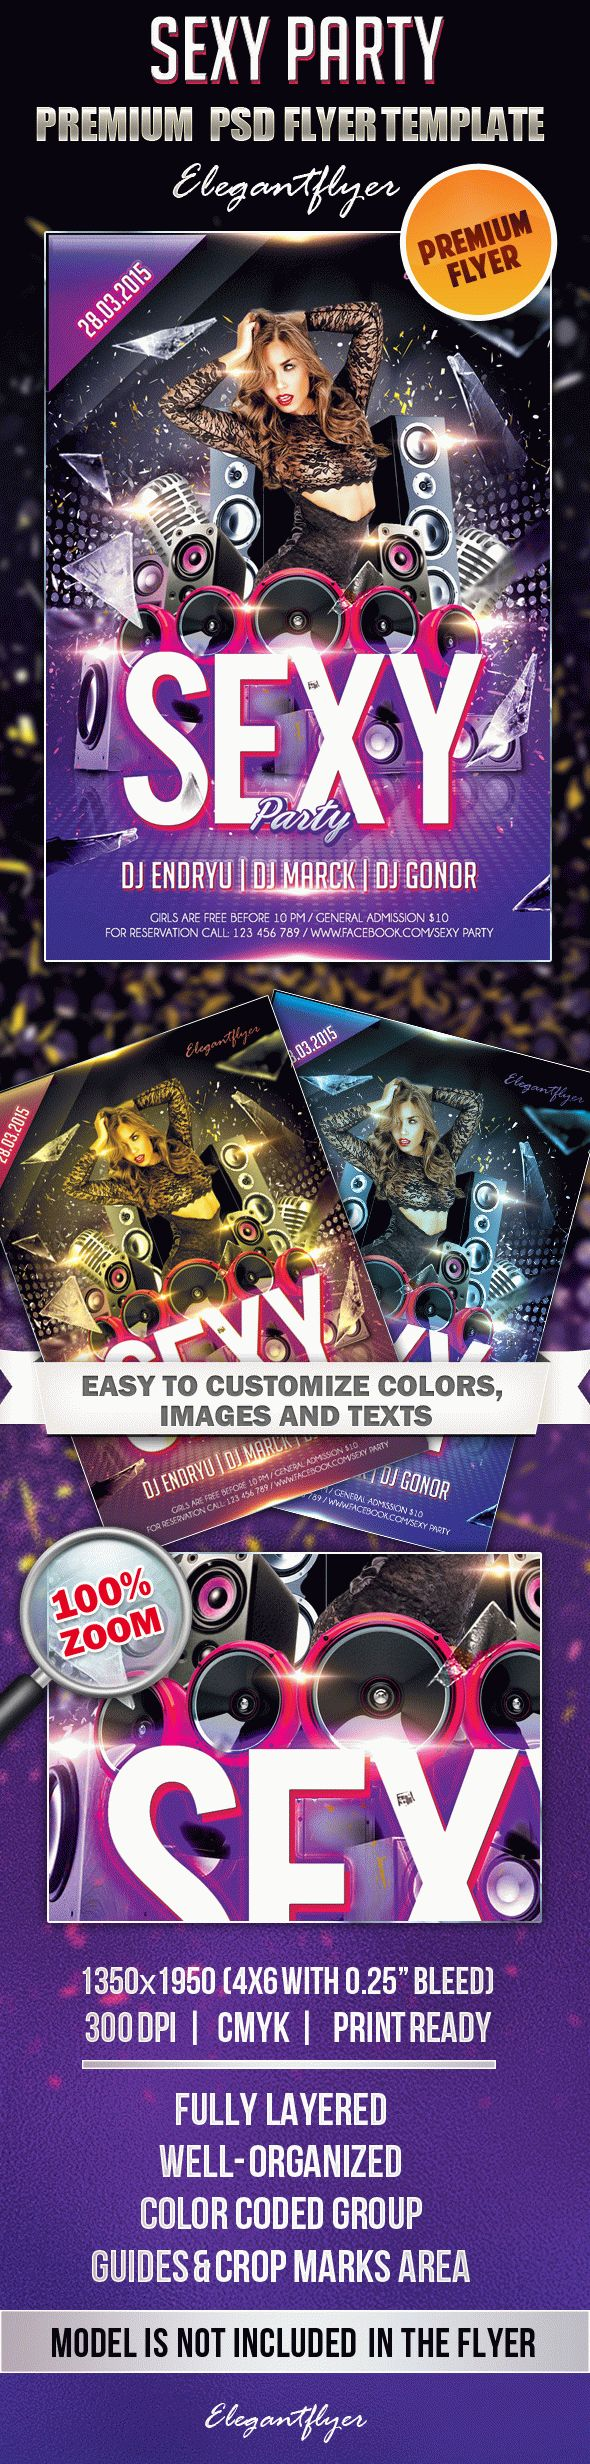 Sexy Party 2 – Premium Club flyer PSD Template